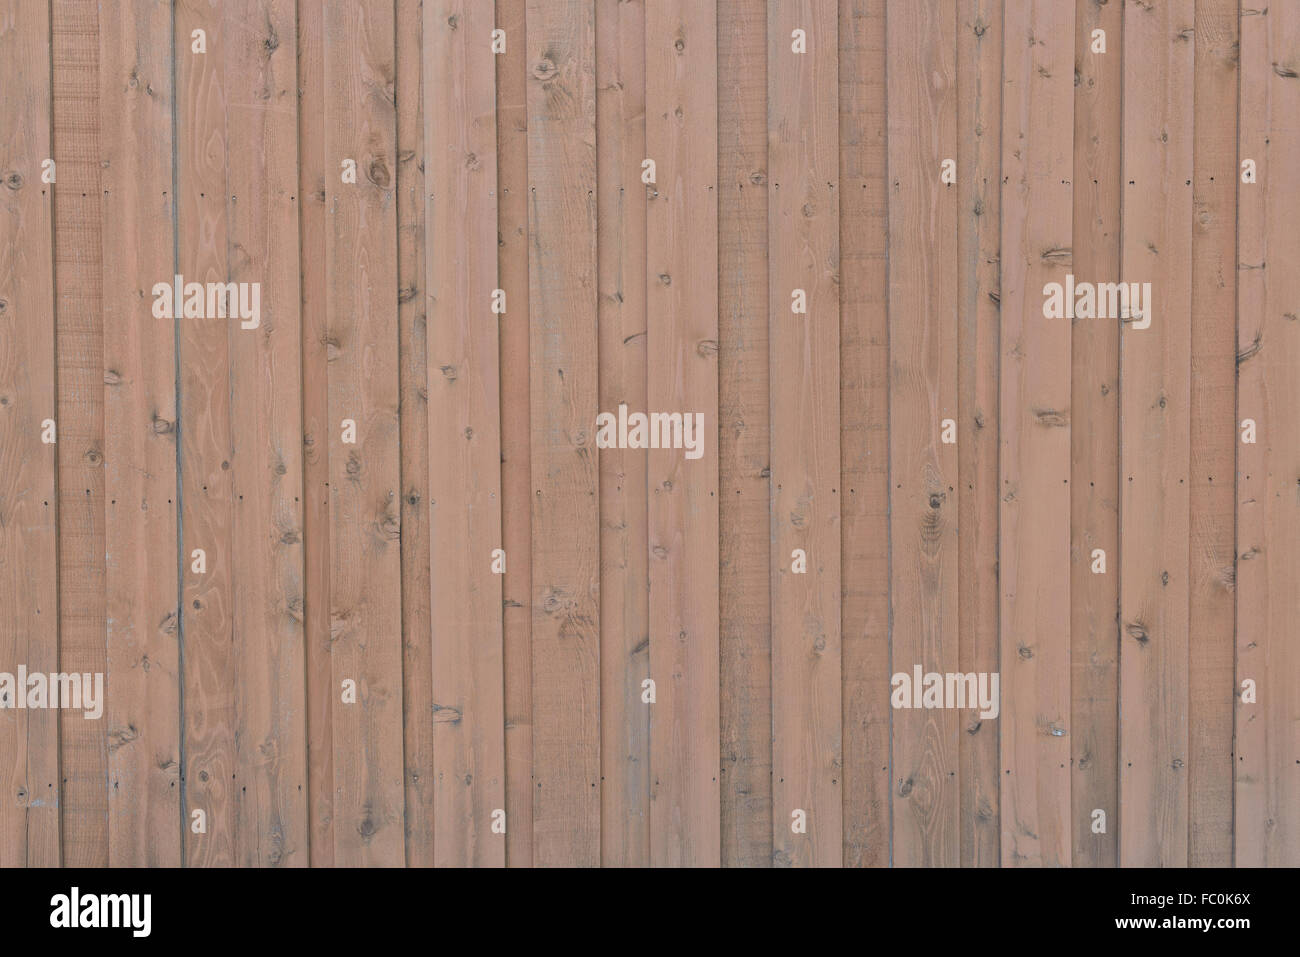 Parallel Wood Fence Background, Red Brown Color